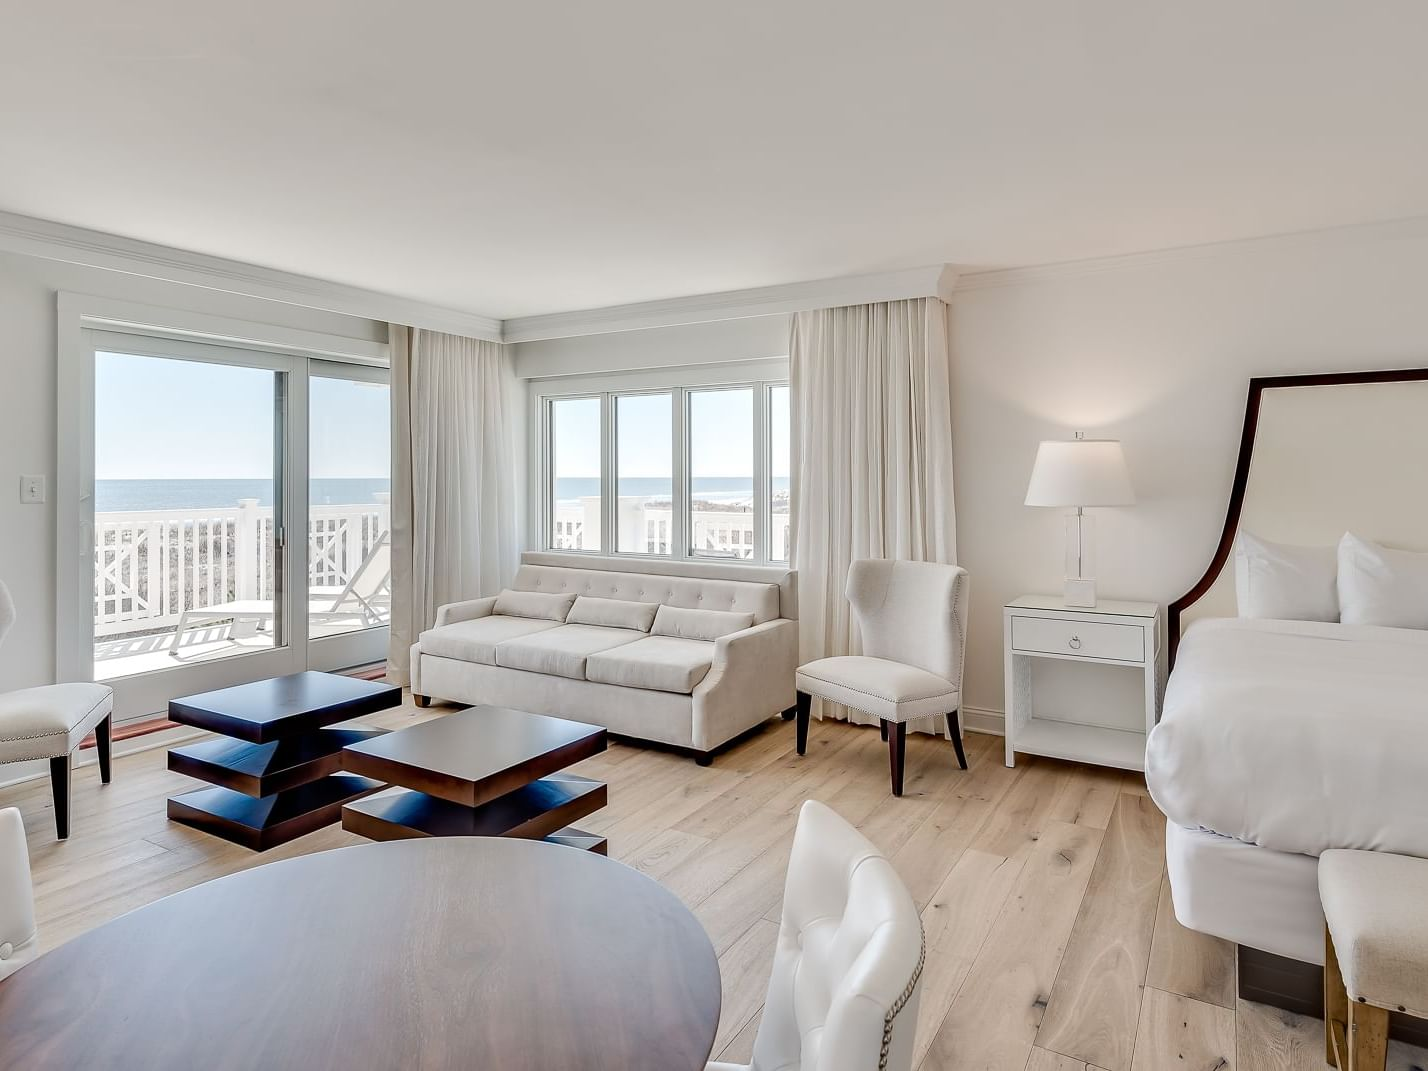 ICONA Avalon Side Oceanfront Luxury King Studio dining, living & sleeping area with large wrap around ocean front balcony